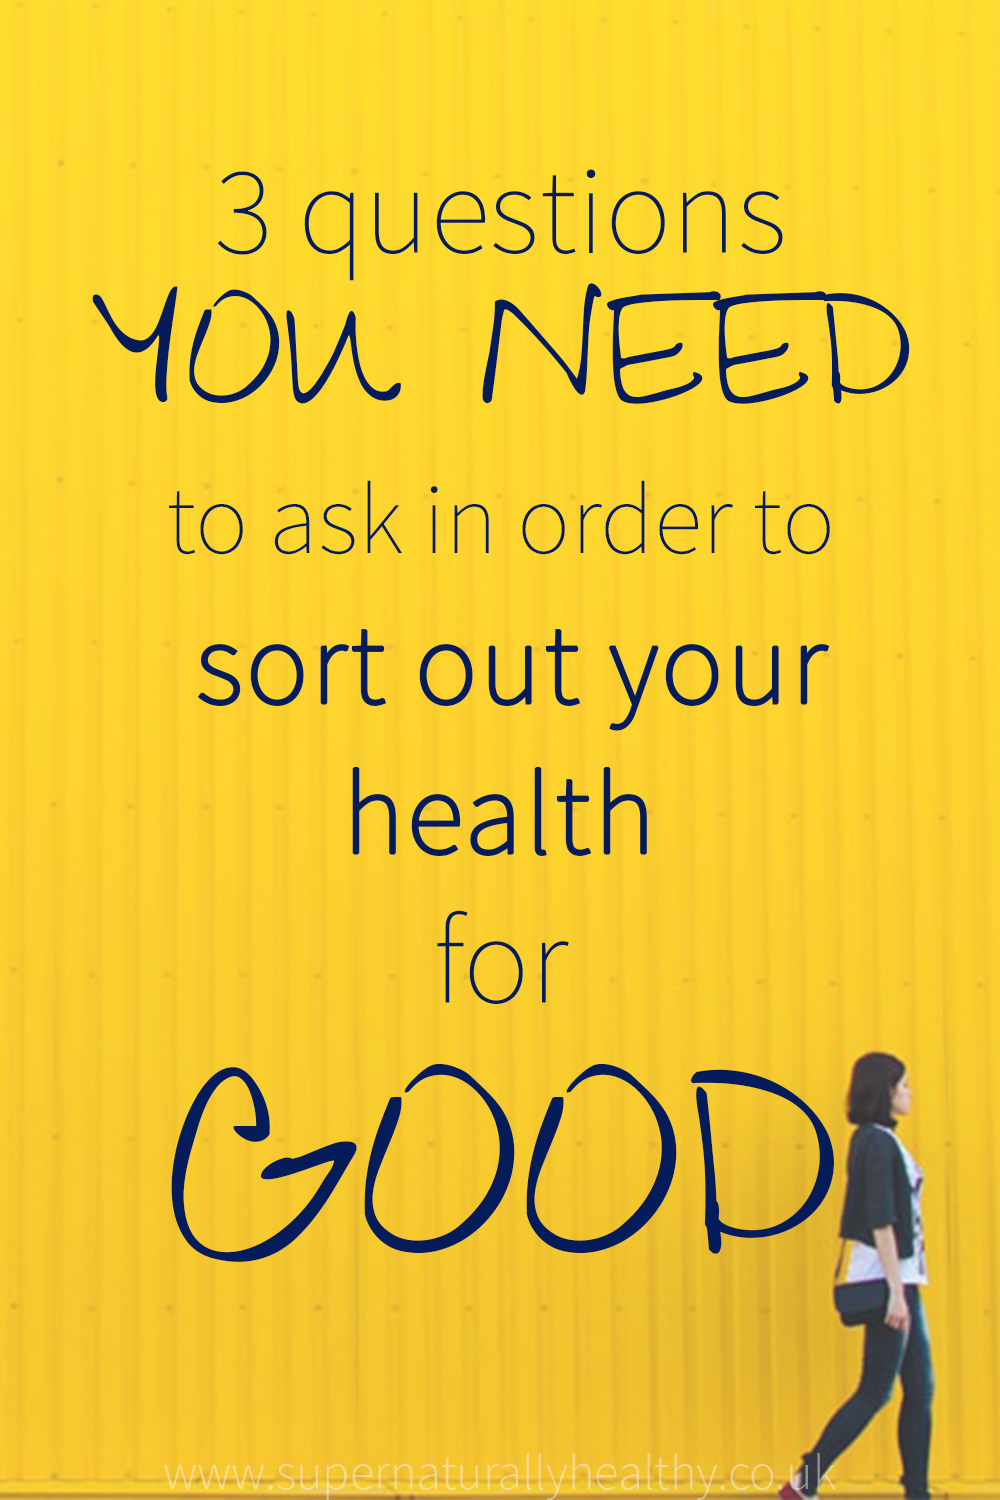 3 questions you NEED to ask in order to sort out your health